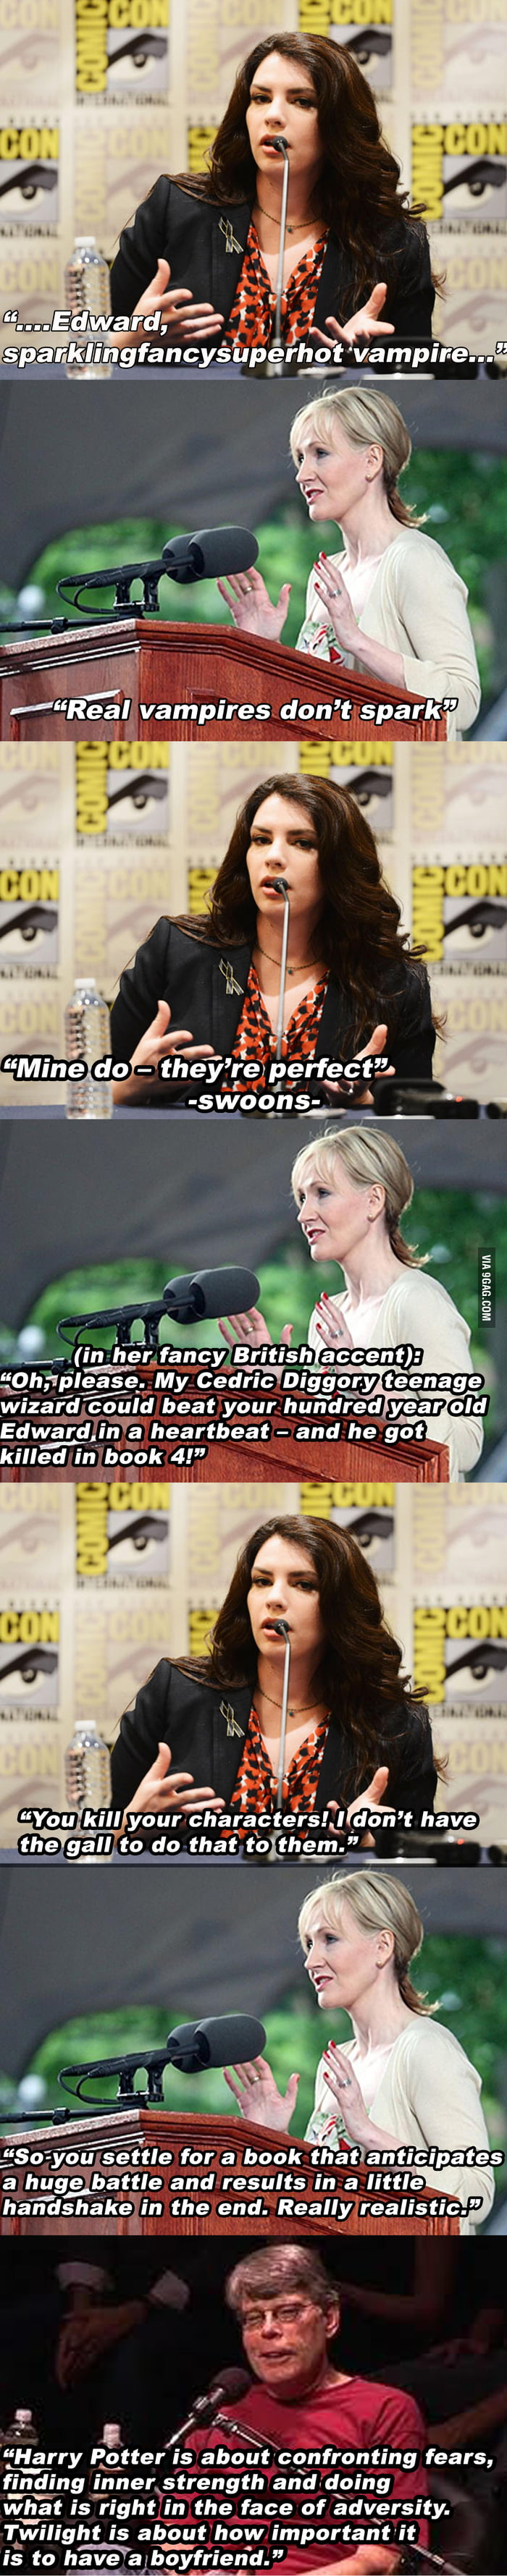 Stephanie Meyer and J.K. Rowling debate.